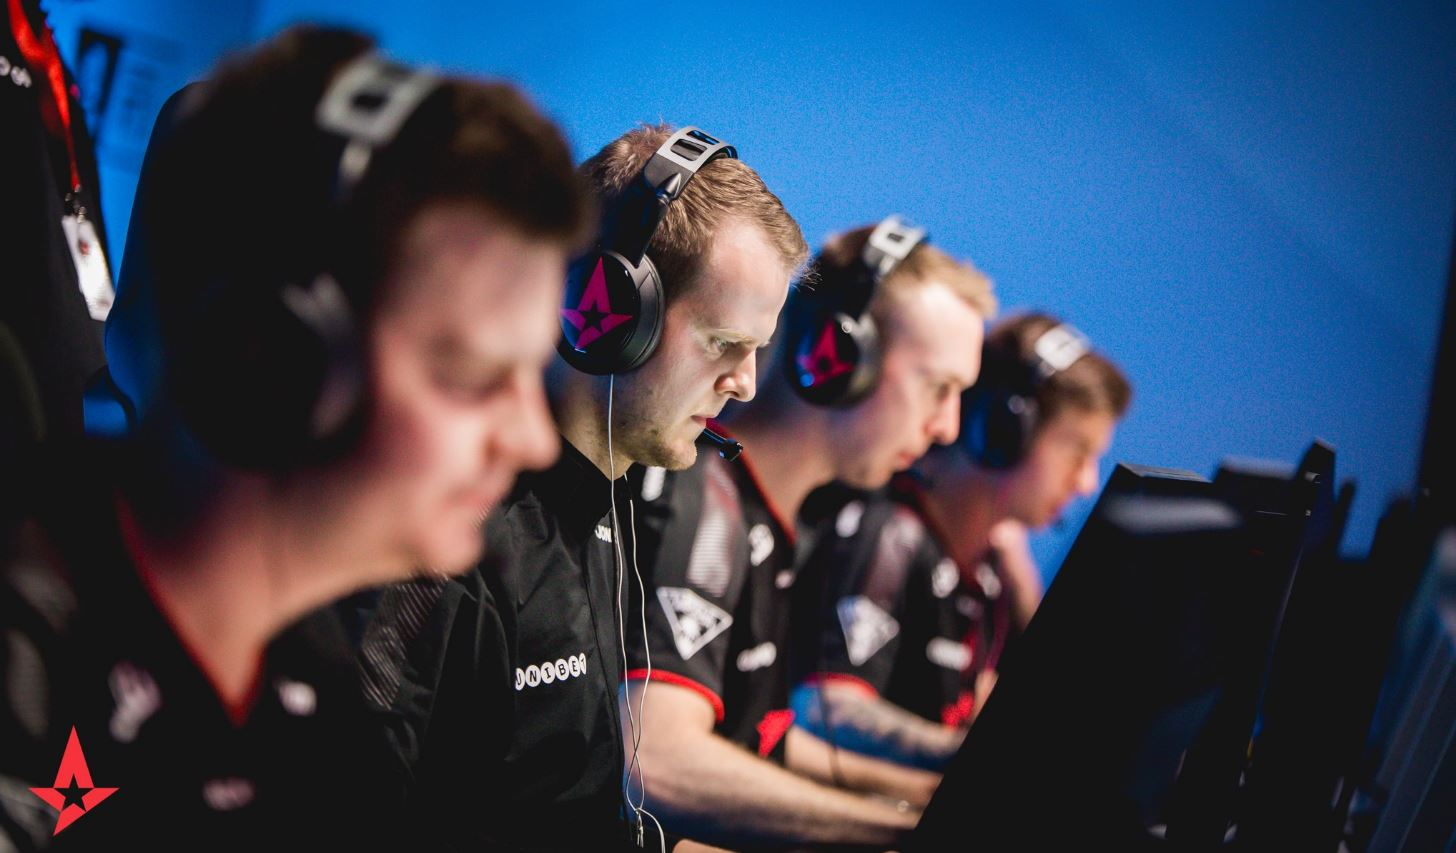 Astralis competing in CS:GO